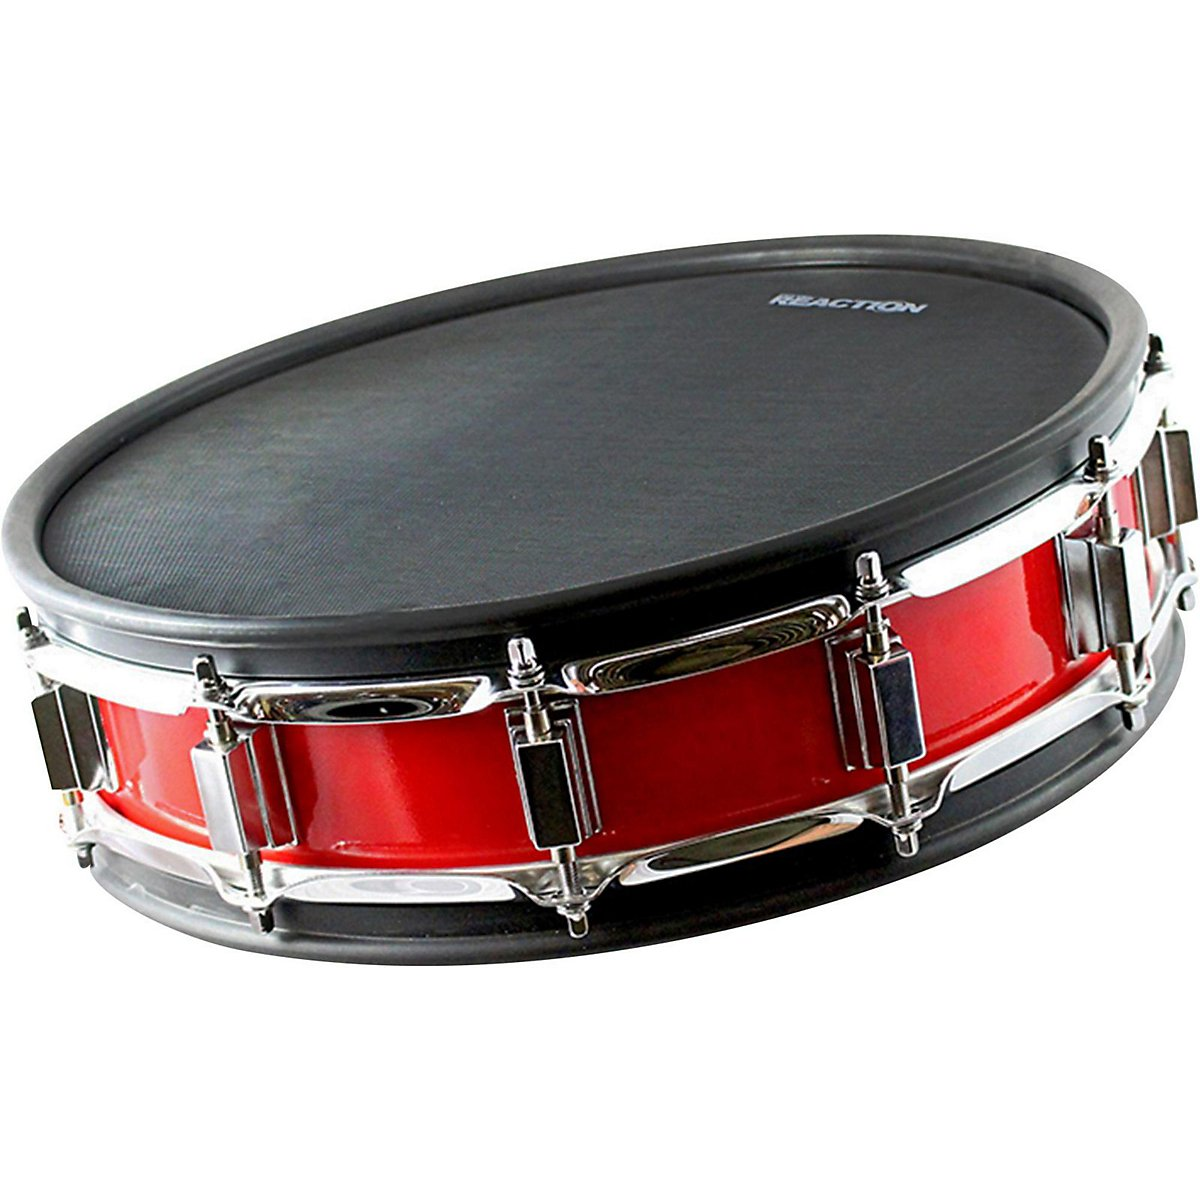 Pintech Percussion PHX14-R Red 14'' Electronic Piccolo Snare by Pintech Percussion